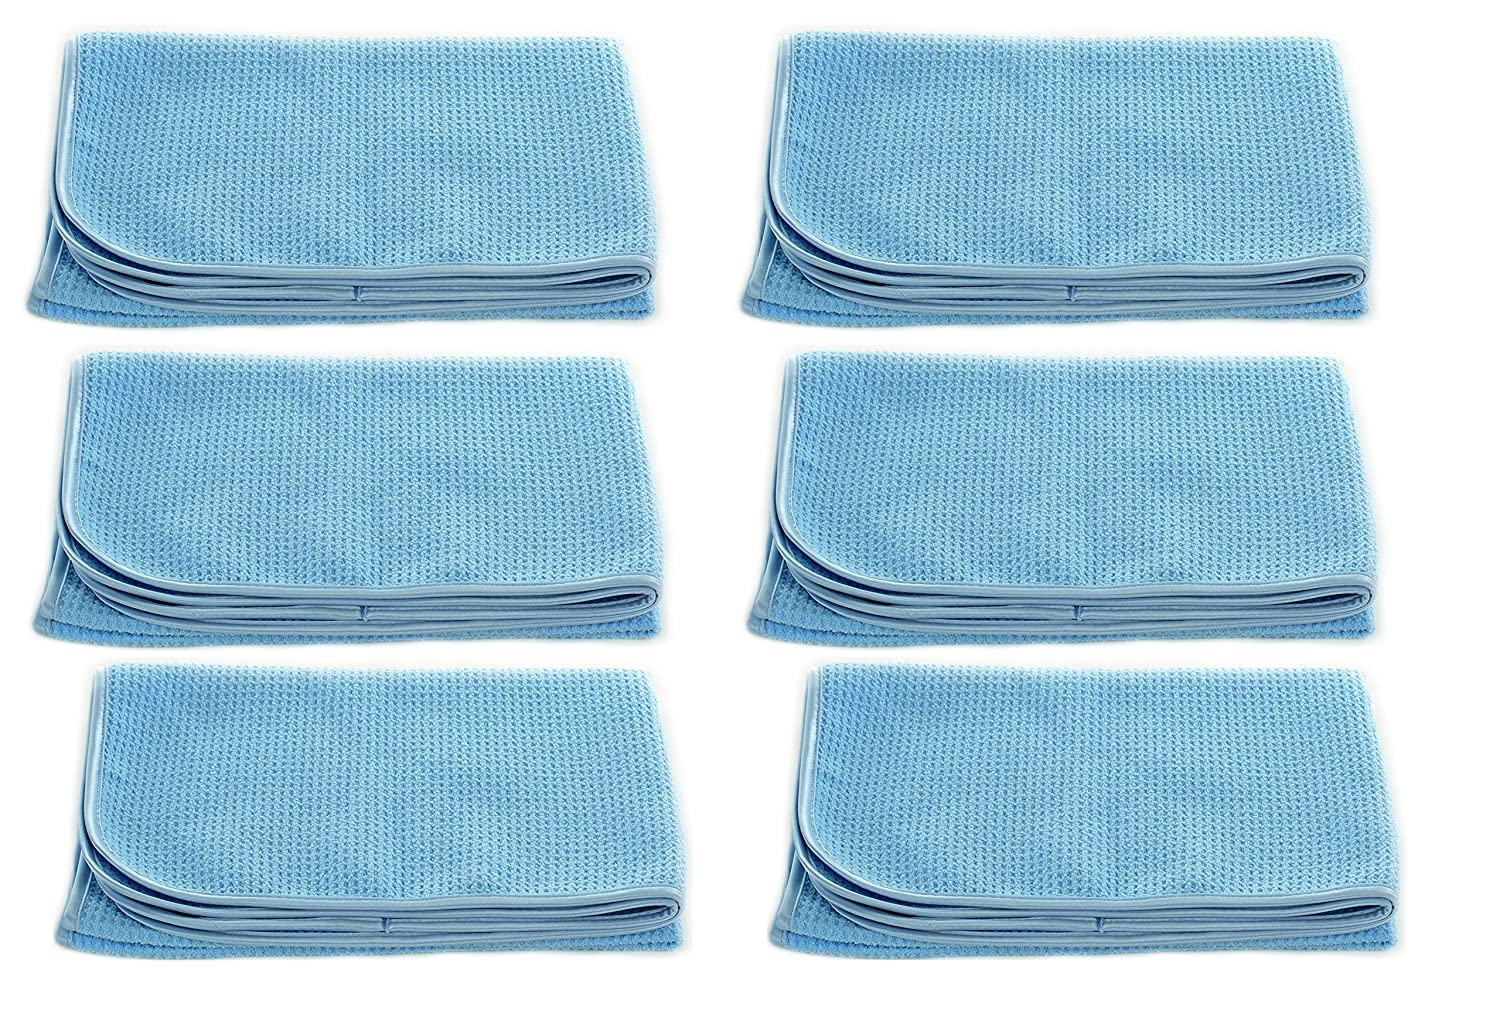 "Real Clean Professional Grade Premium Ultra-Microfiber Extra Thirsty Big Blue Automotive Drying Towel 25""x 36"" Chemical and Water Safe Material (6 Pack)"